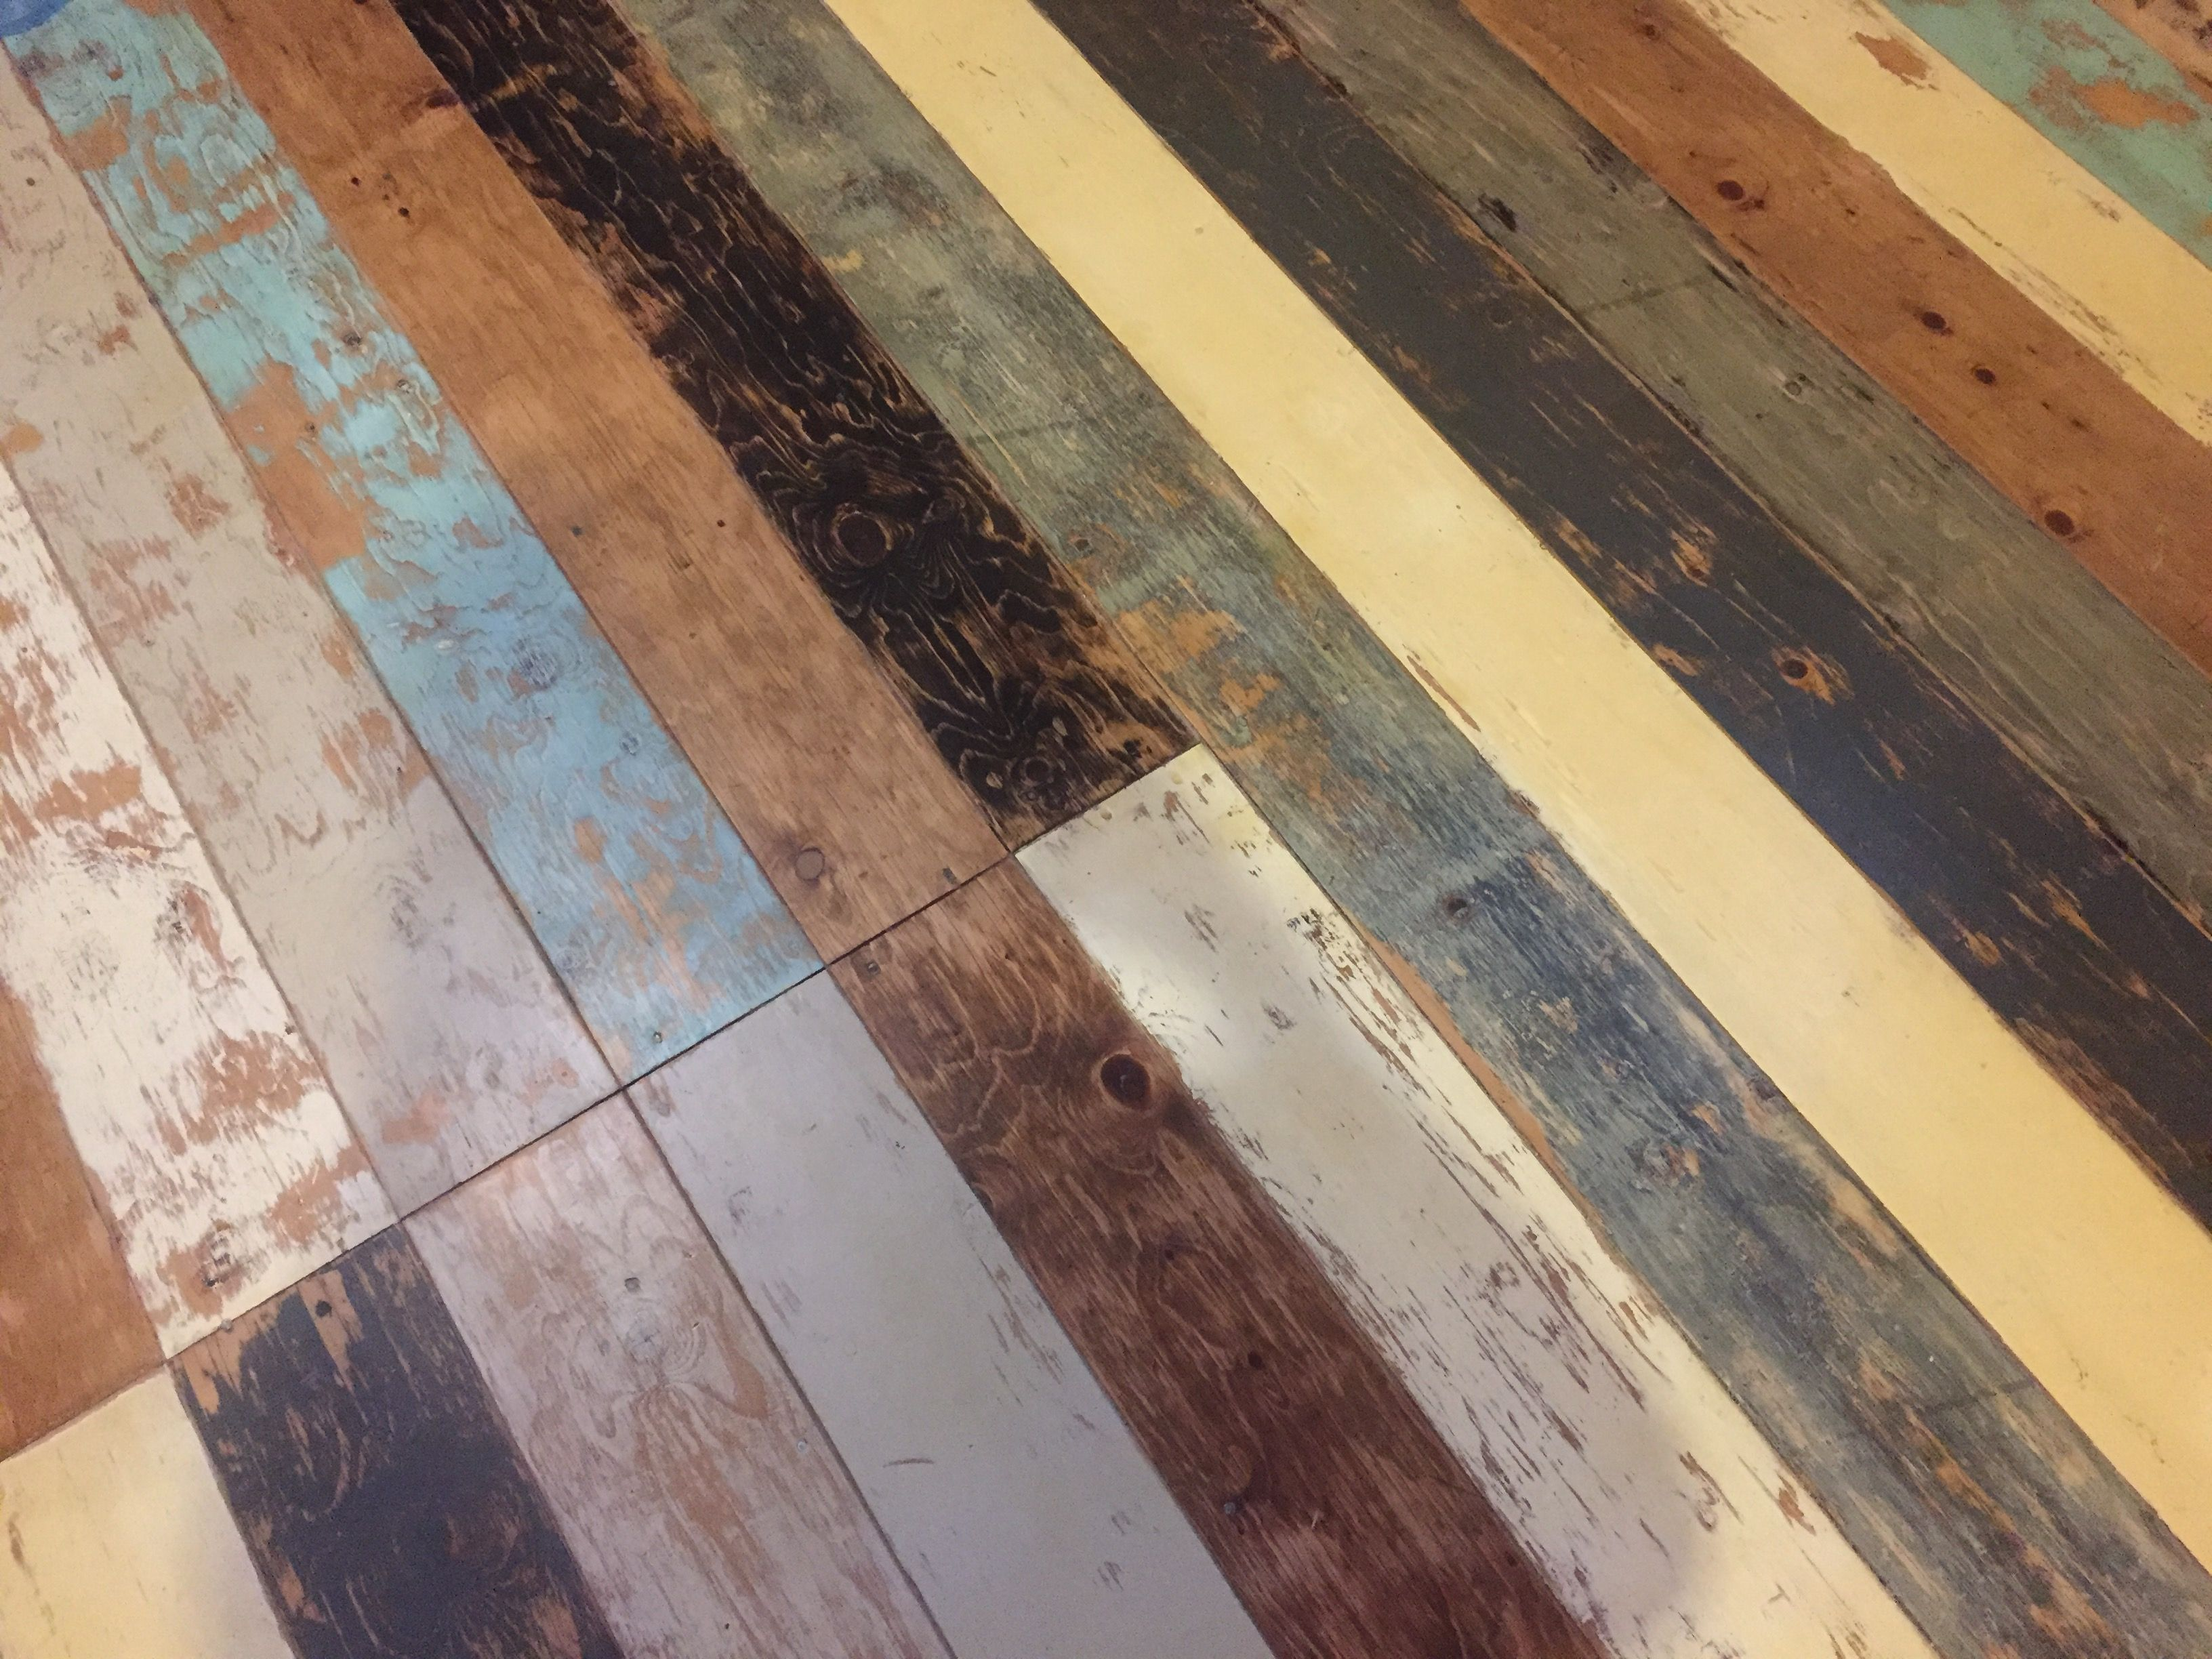 Patchwork Plywood Subfloor Faux Planks Routed In Using 1 8 Deep V Groove Bit And A Sled Jig As A Guide Each Painted Flooring Plywood Subfloor Floor Remodel